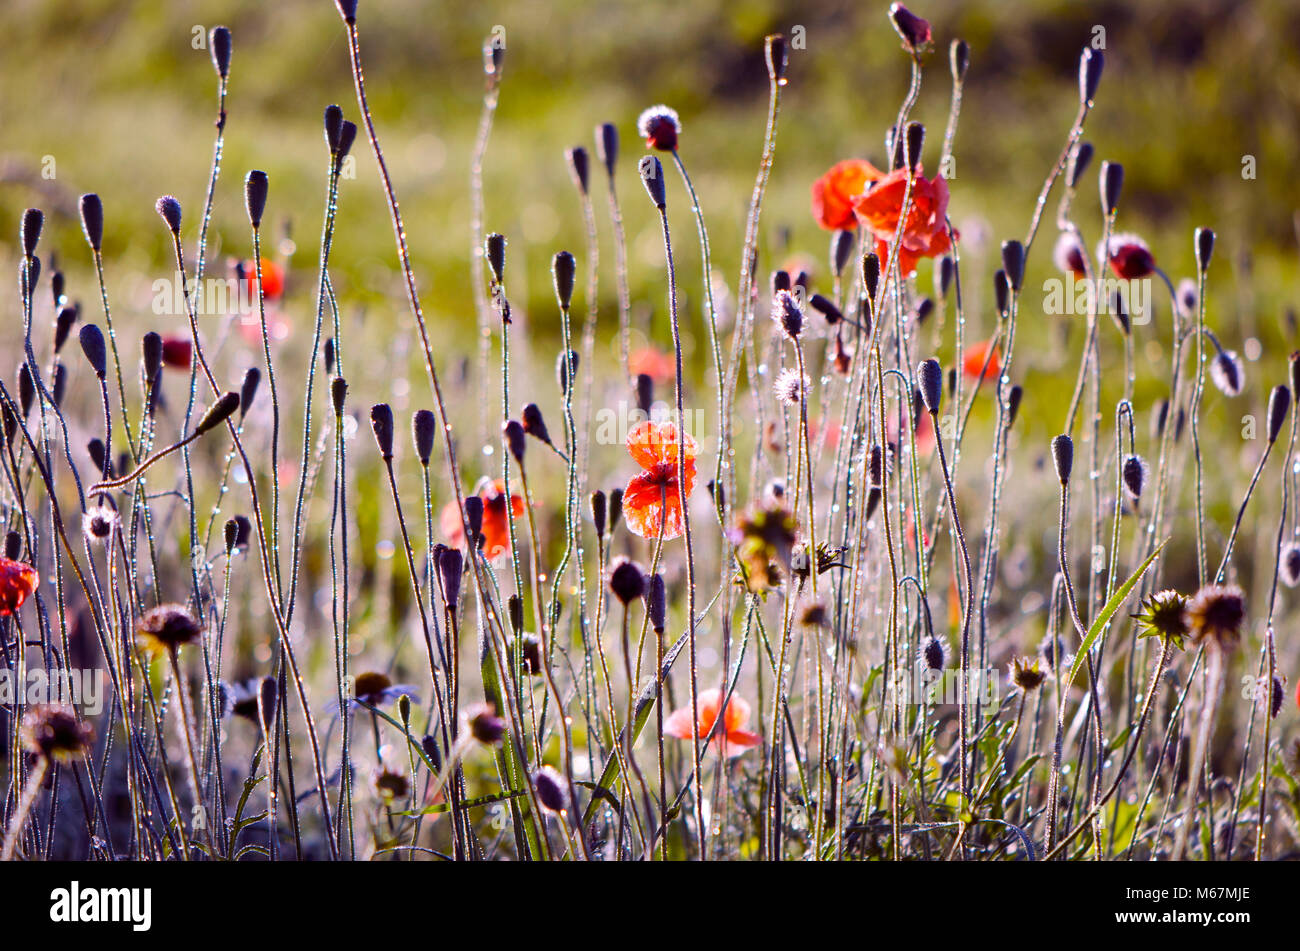 Blur Wild Poppies Flowers And Heads Nature Background Stock Photo